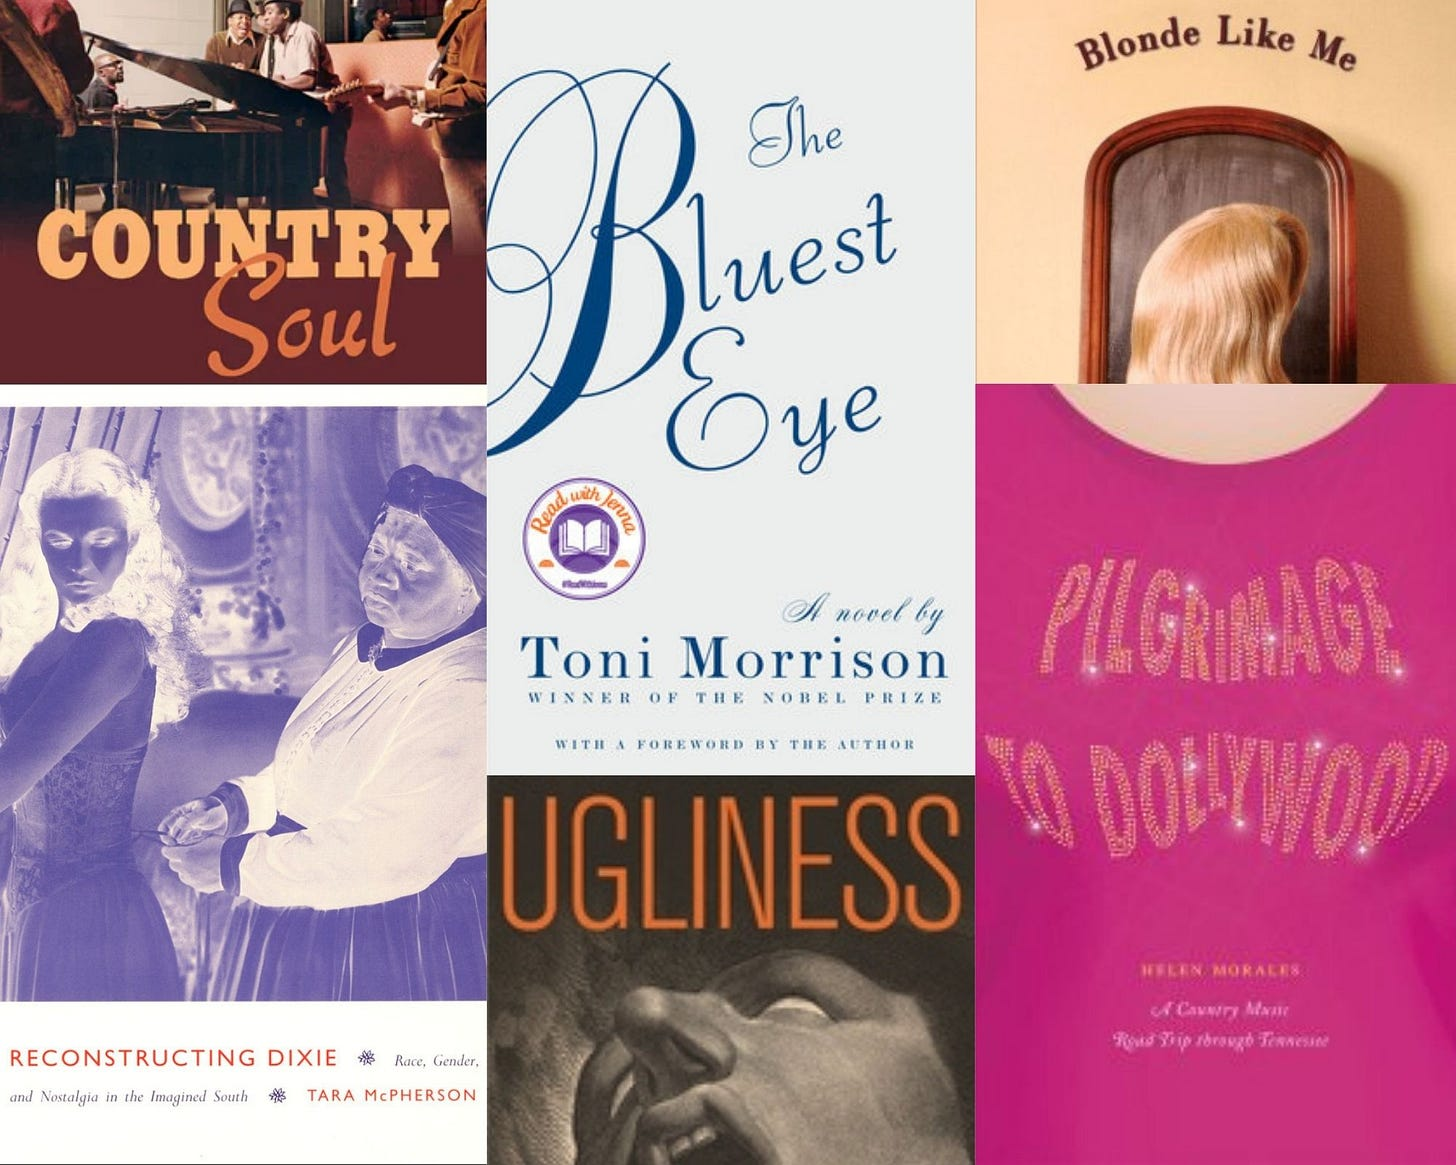 A collage of six book covers from the Dolly reading list. Those books are: Country Soul, Reconstructing Dixie, The Bluest Eye, Ugliness, Blonde Like Me, and Pilgrimage to Dollywood